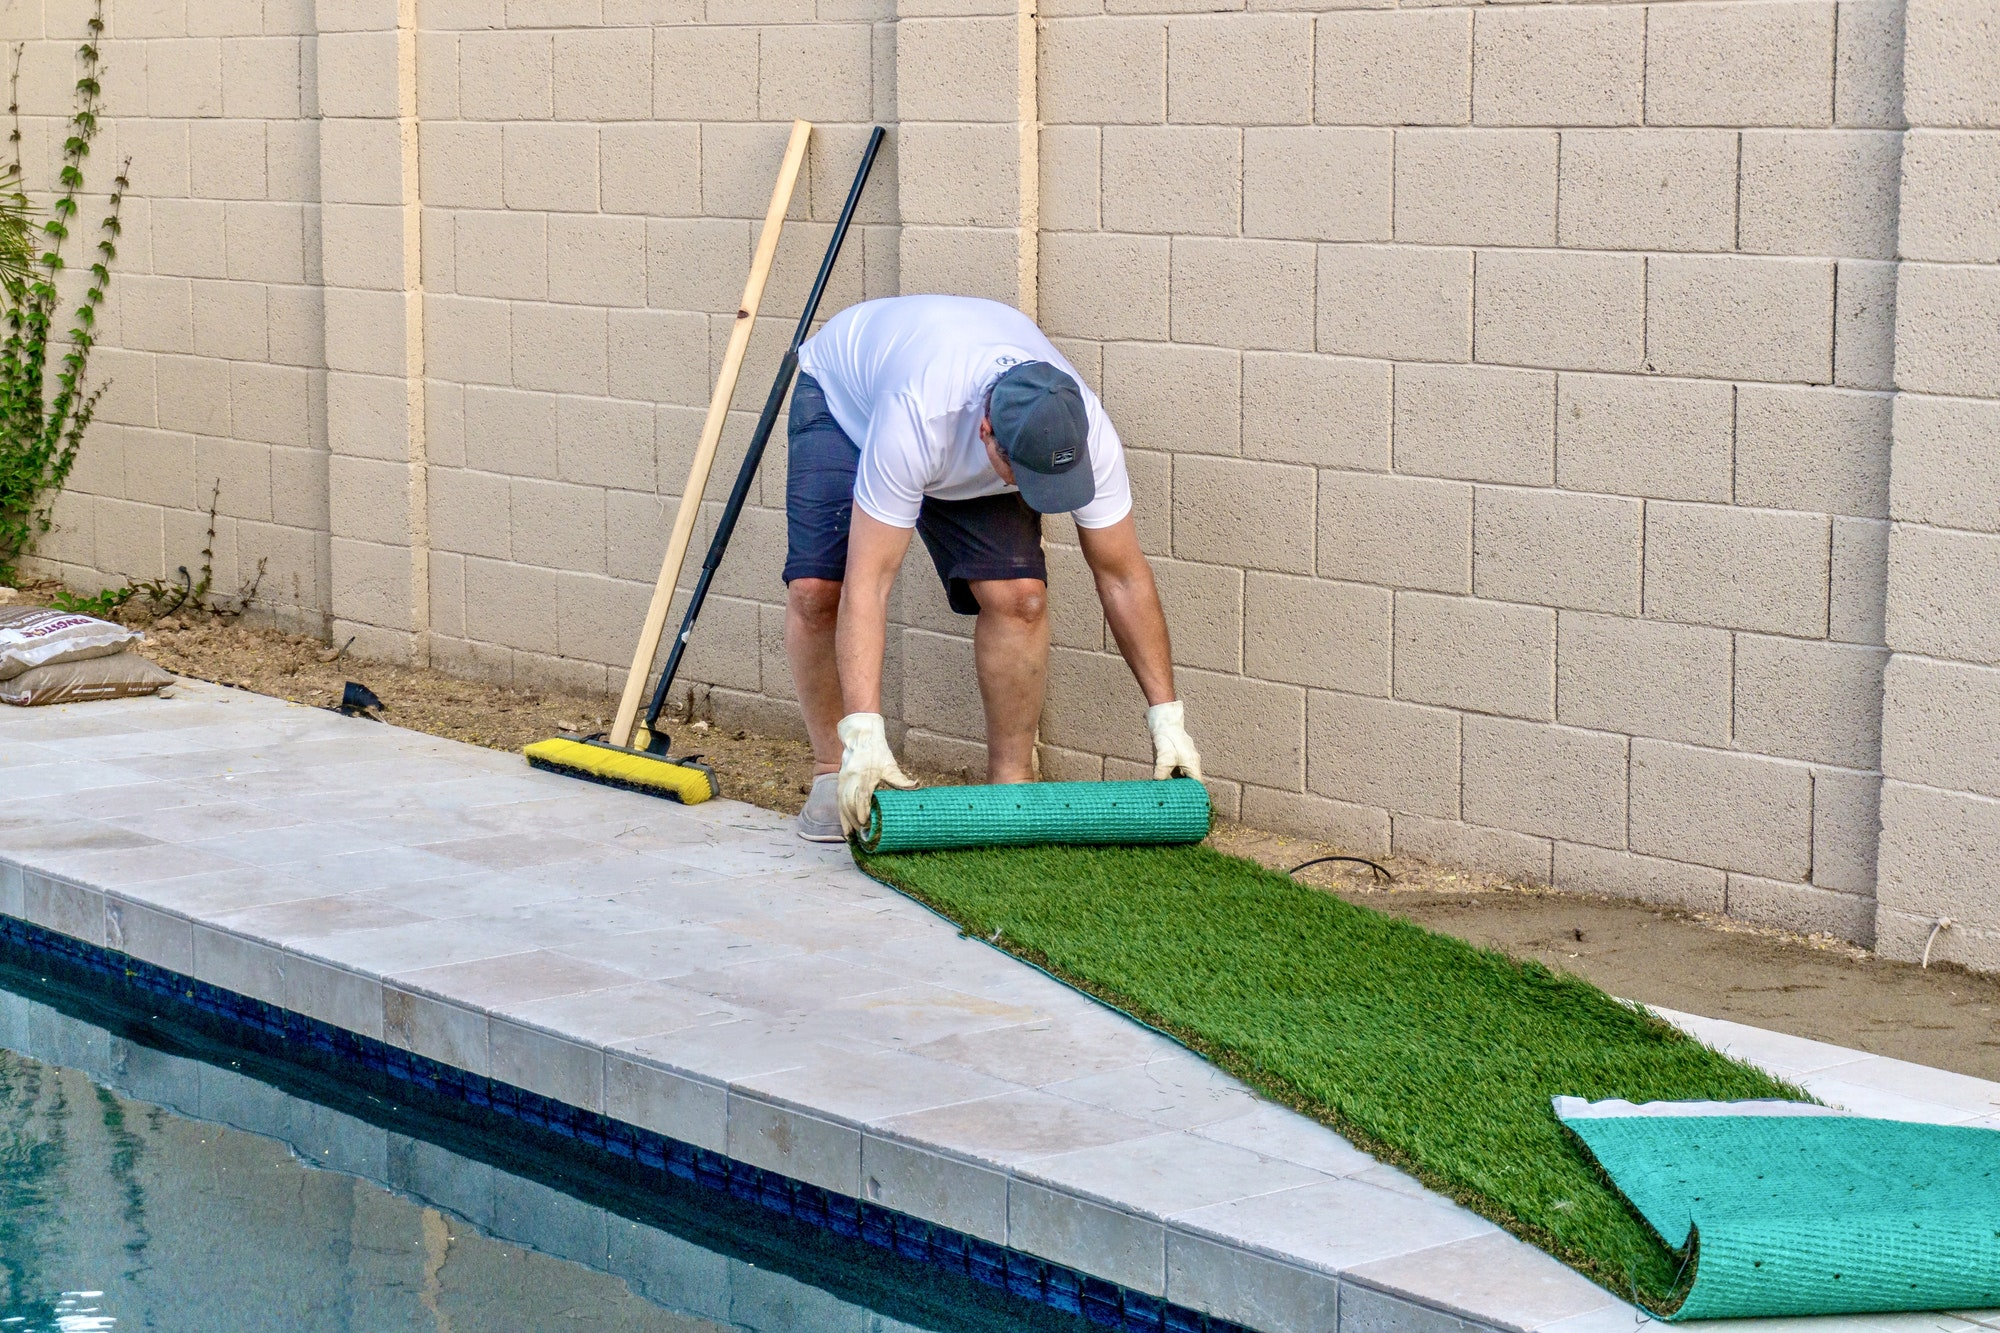 Adult male rolling out and installing artificial turf in a small space